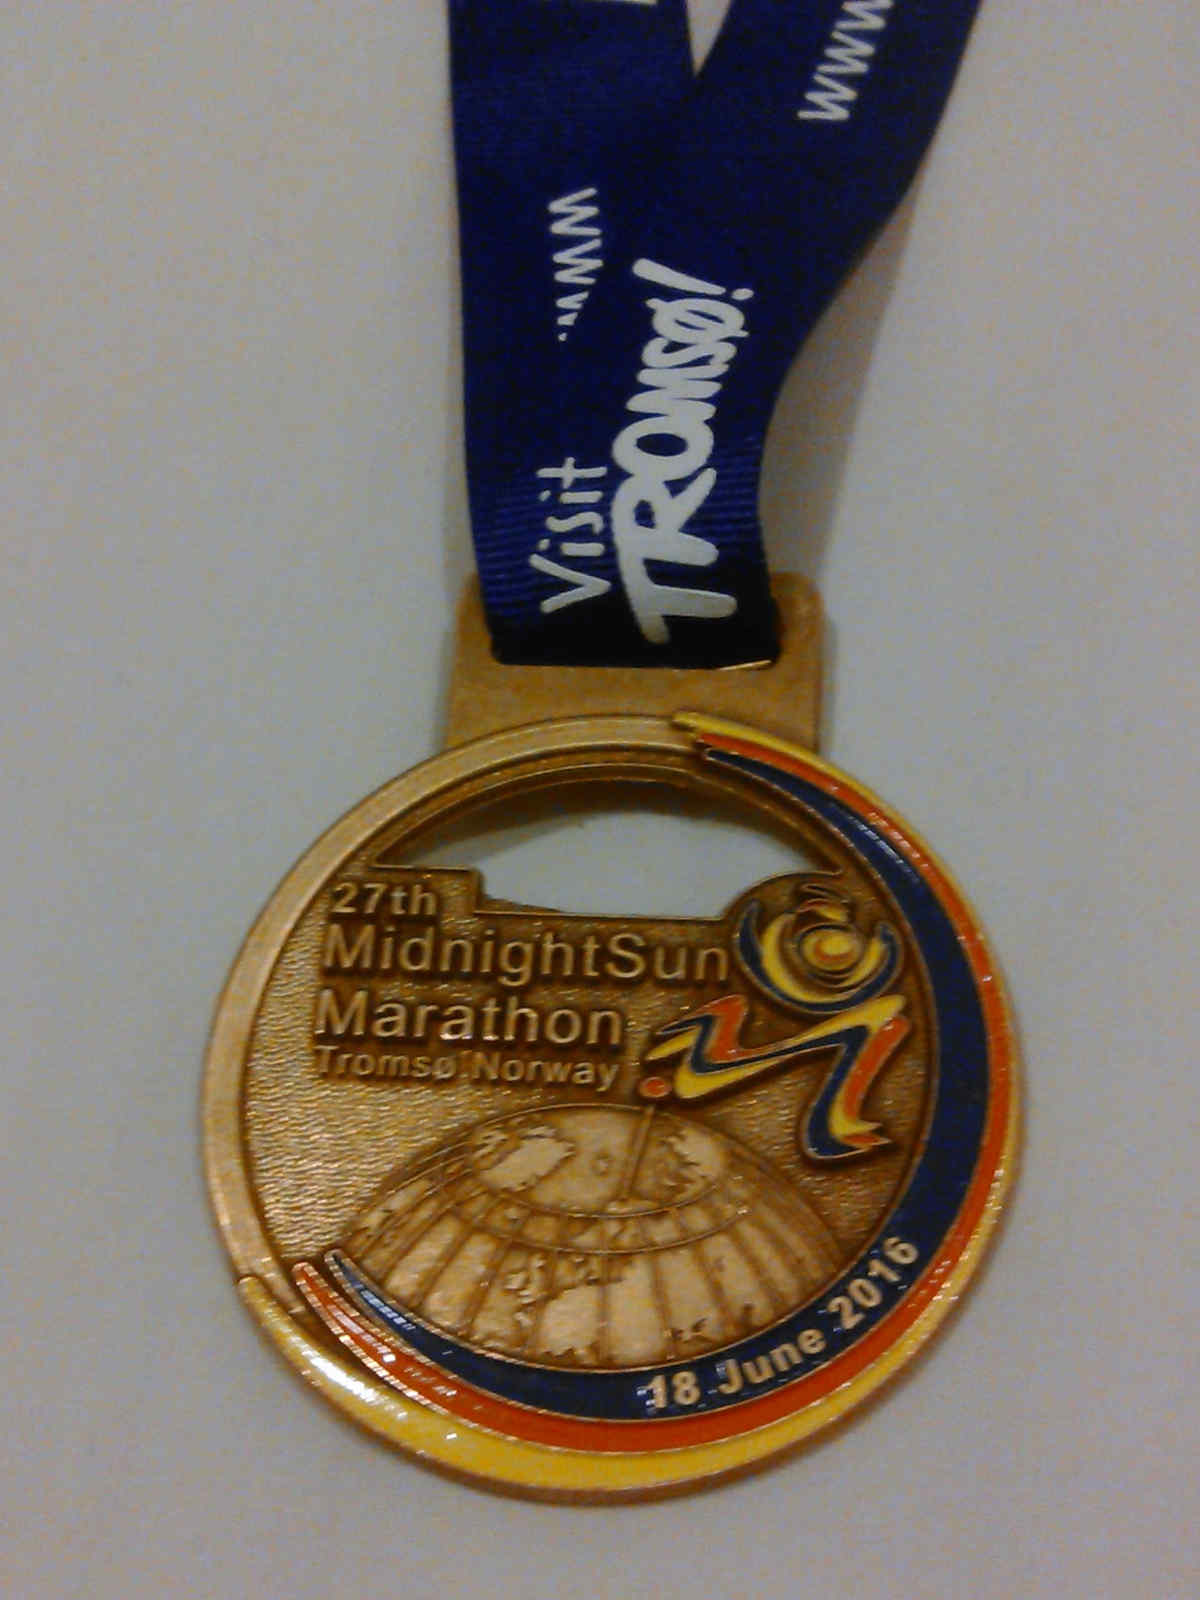 Midnight Sun Marathon finishers' medal